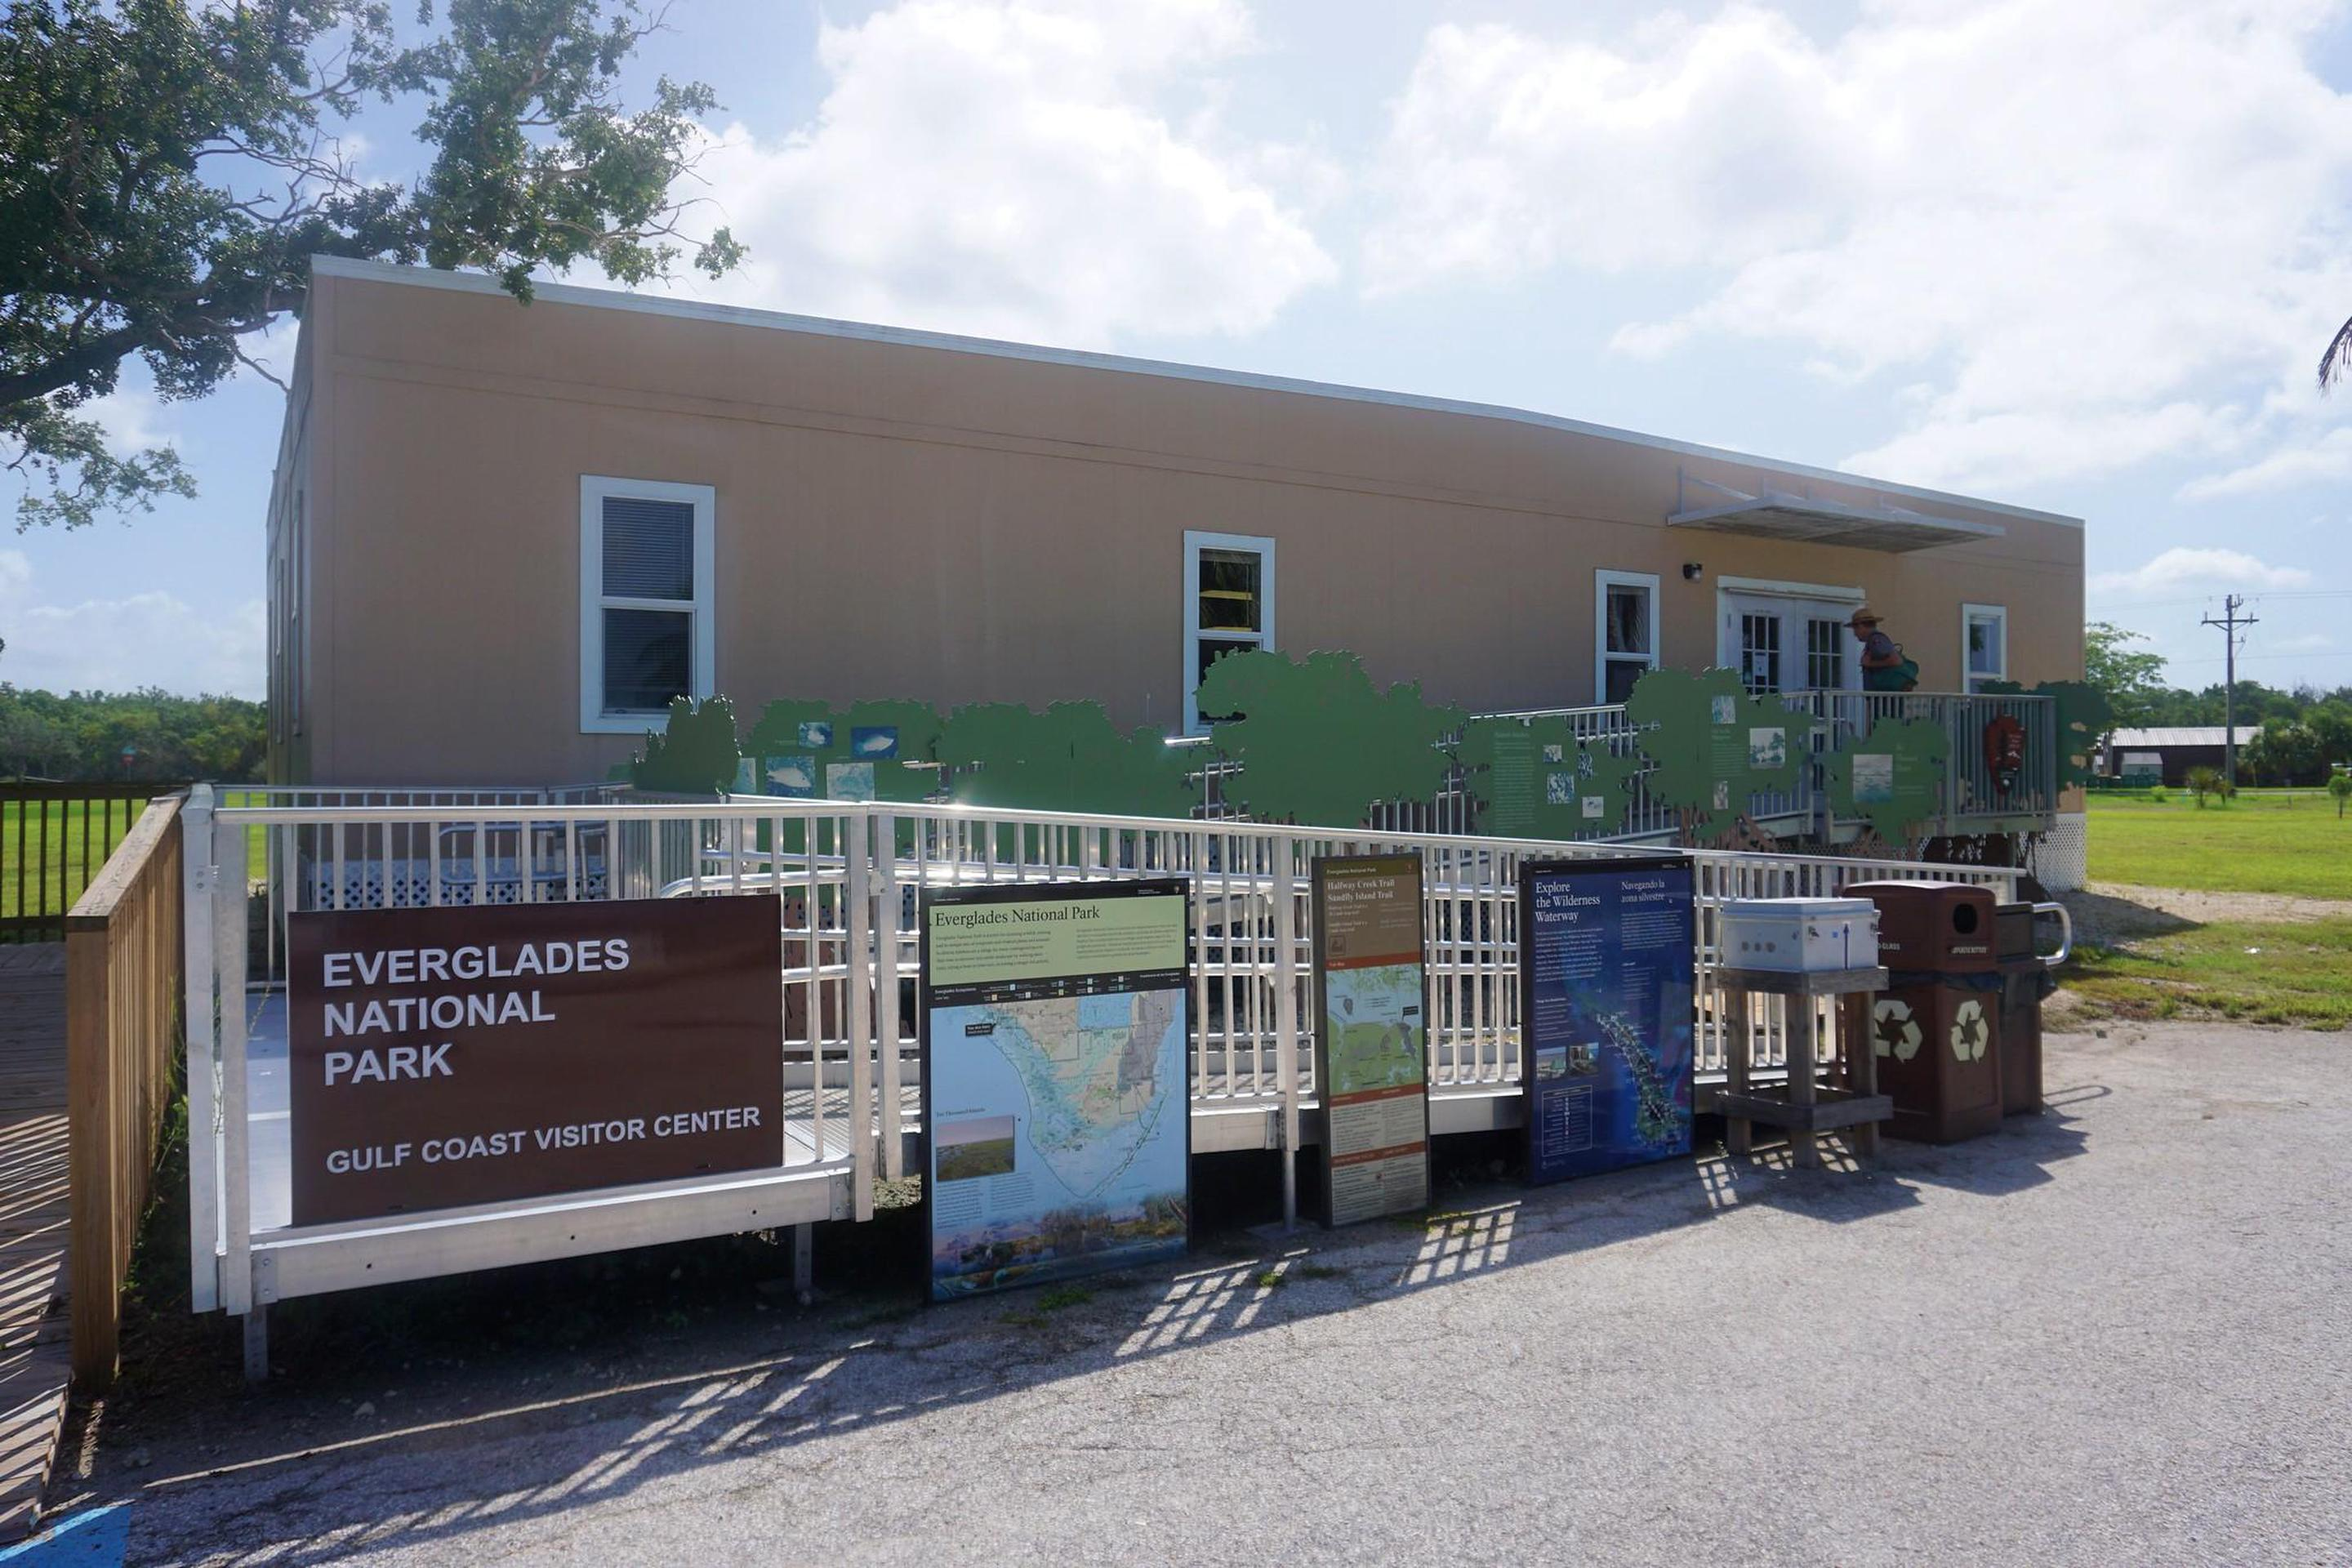 Gulf Coast Visitor Center